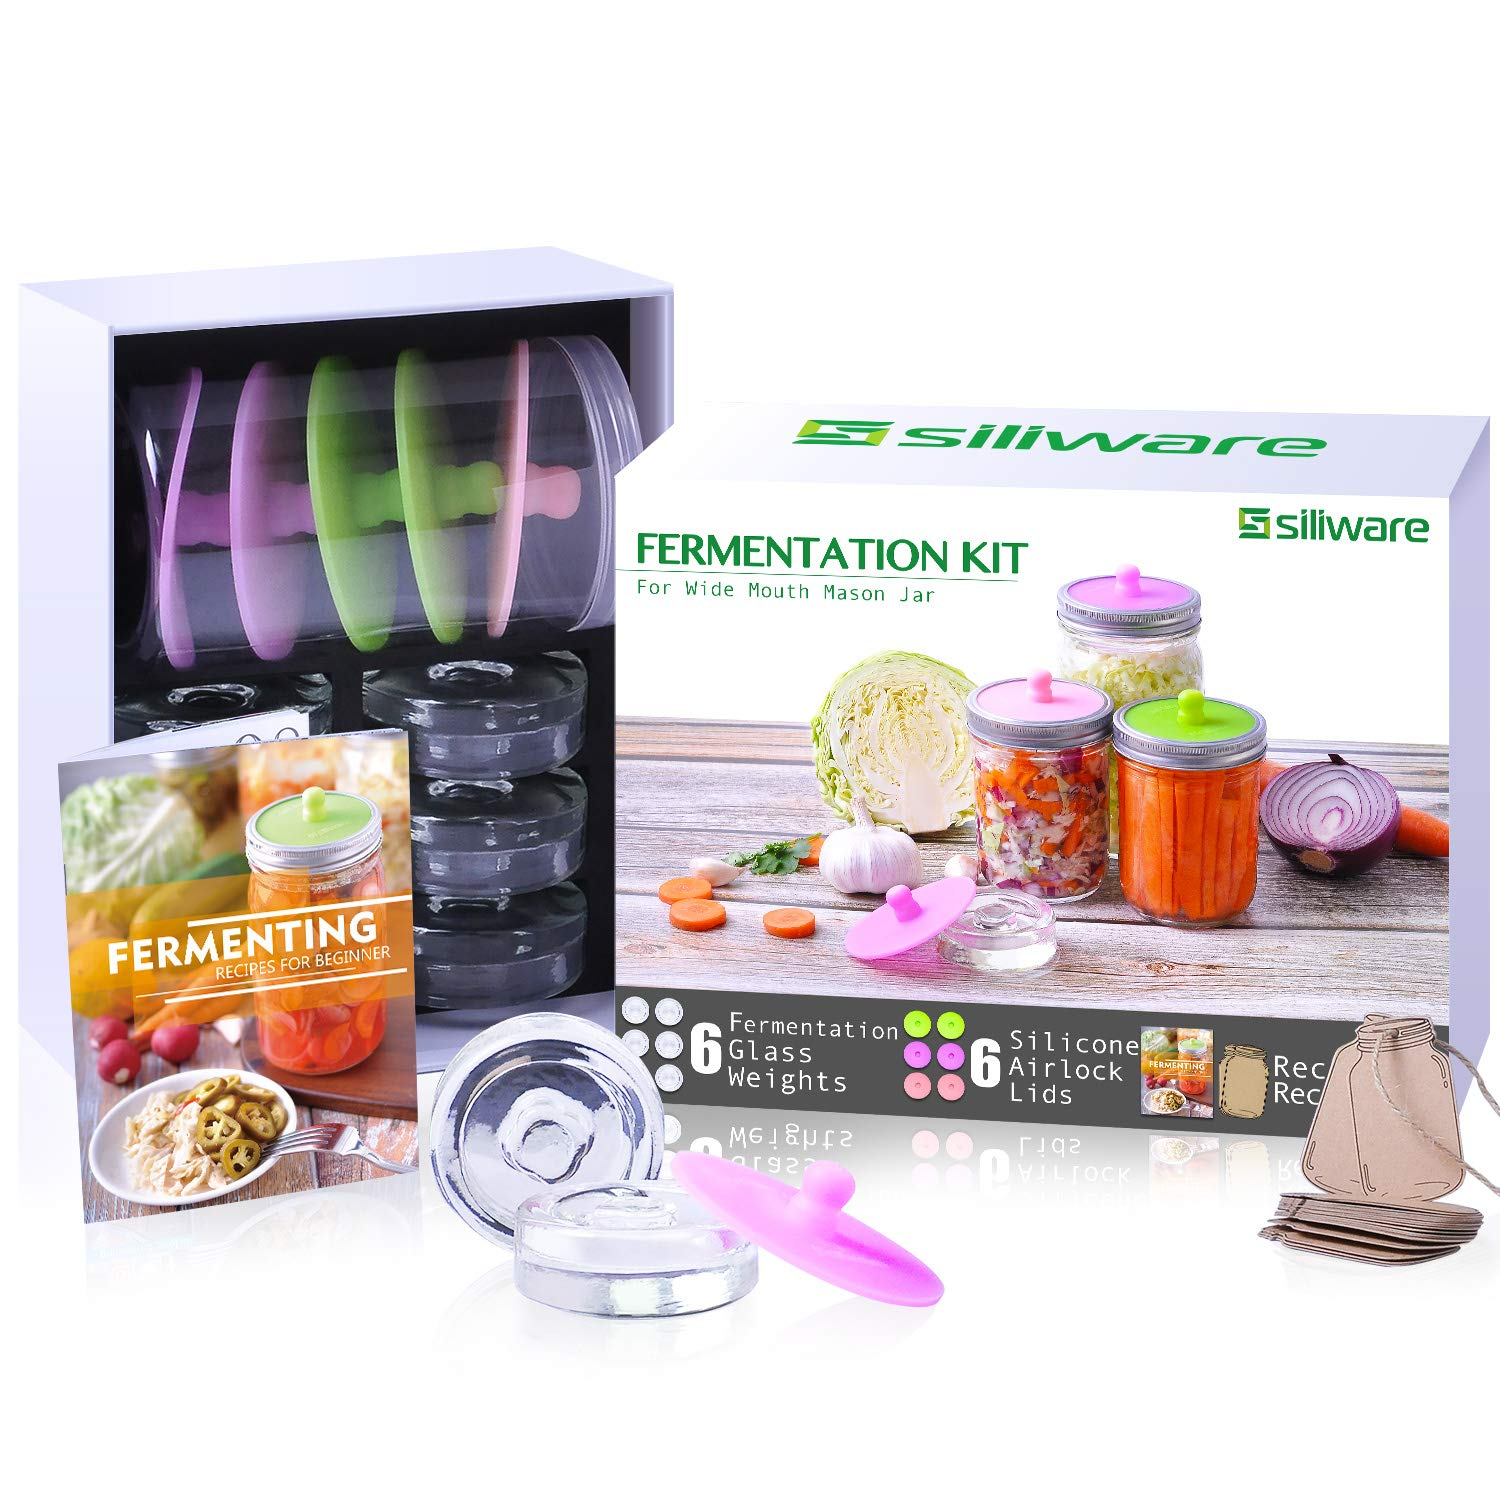 Easy Fermentation Kit for Wide Mouth Mason Jar, Includes 6 Silicone Fermenting Airlock Lids, 6 Glass Fermentation Weights, and Record Tags